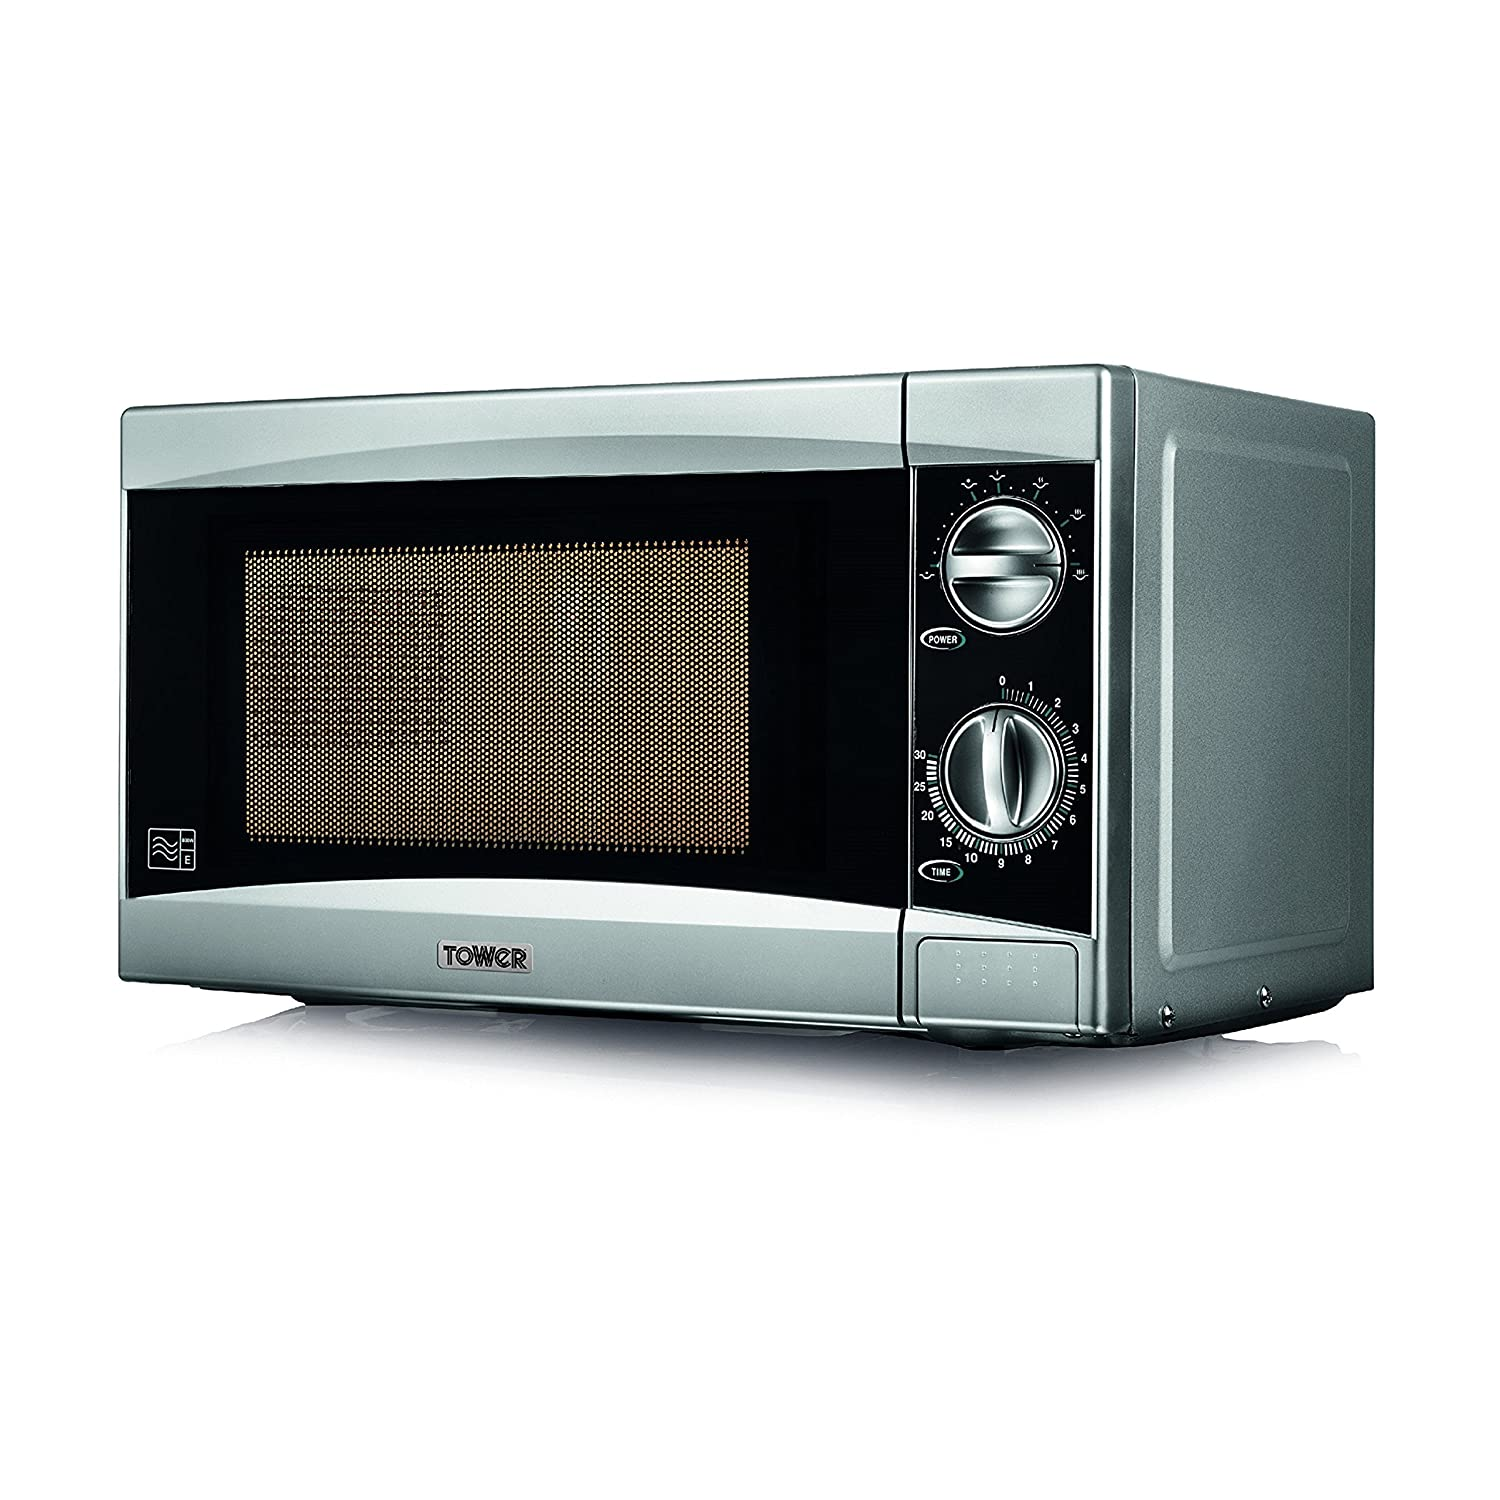 Aldi home sale catalogue special buys stirling 34l microwave oven - Tower T24001 Manual Microwave With Timer 20 L Silver